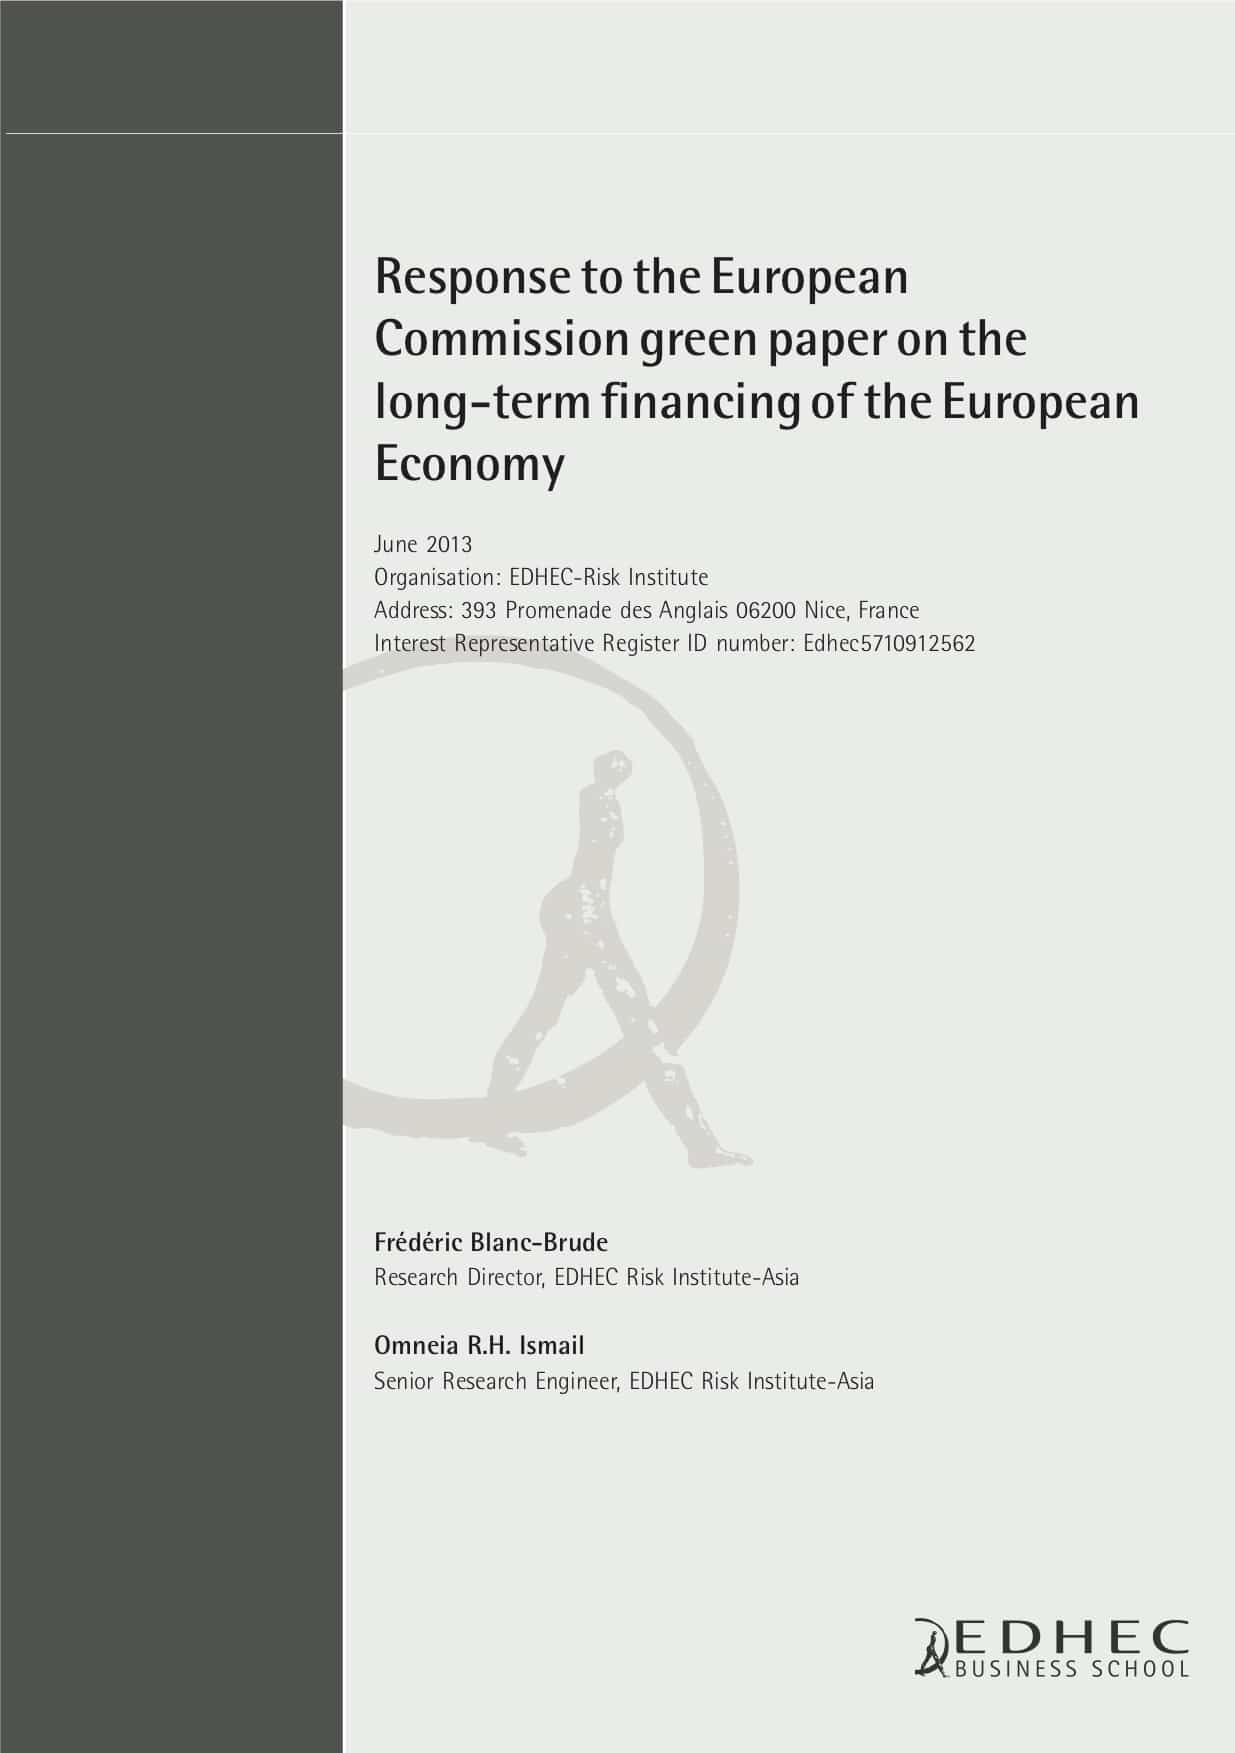 Response to the European Commission green paper on the long-term financing of the European economy